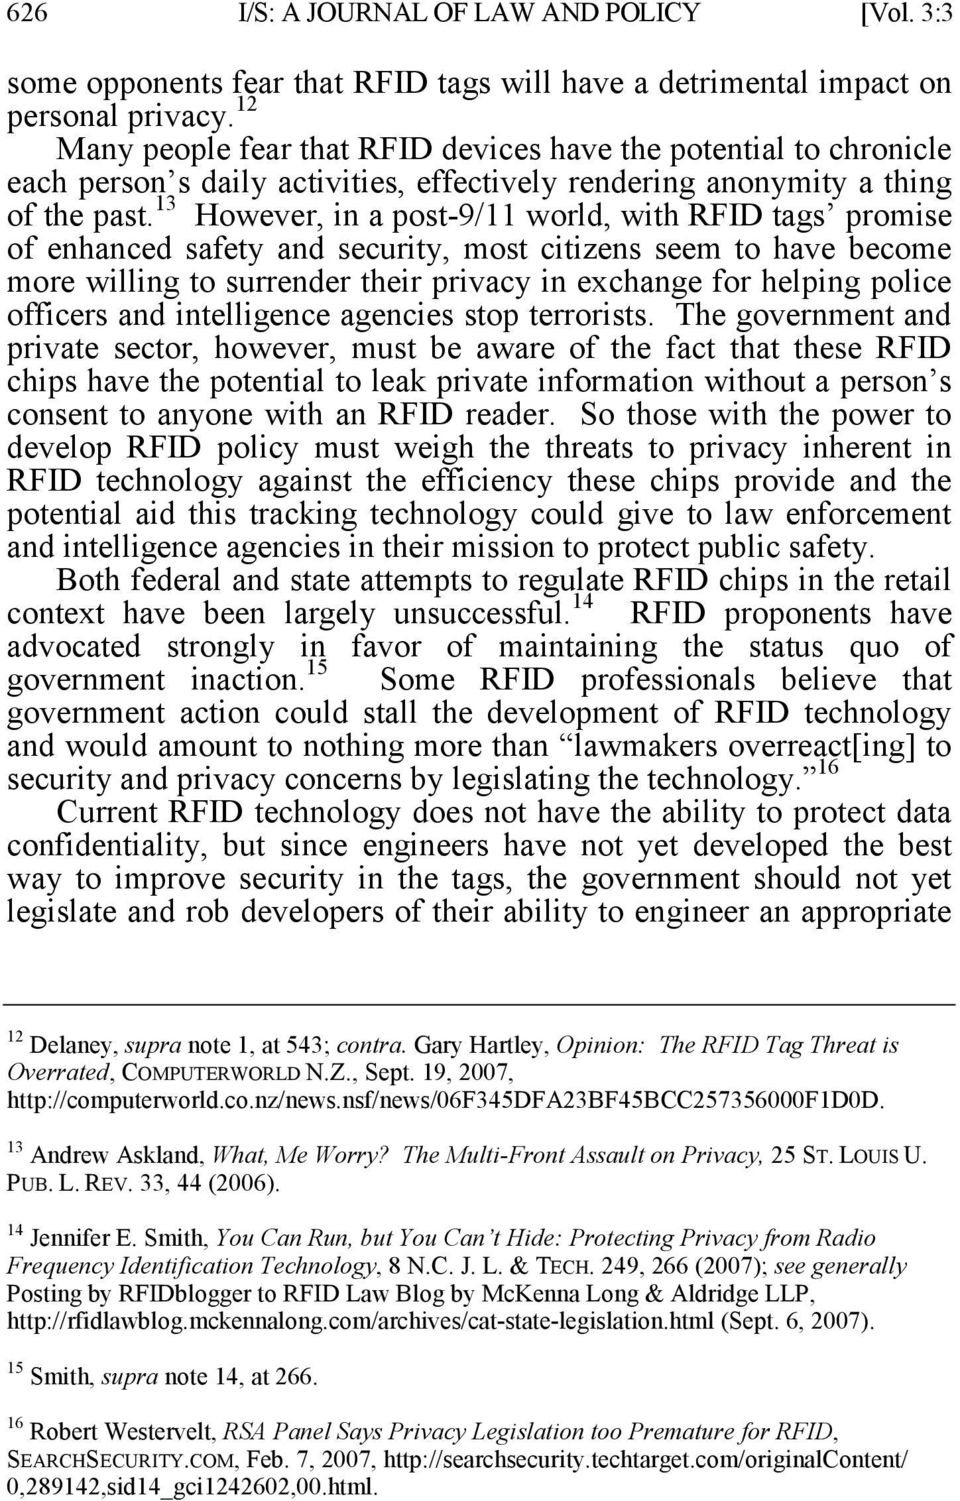 13 However, in a post-9/11 world, with RFID tags promise of enhanced safety and security, most citizens seem to have become more willing to surrender their privacy in exchange for helping police